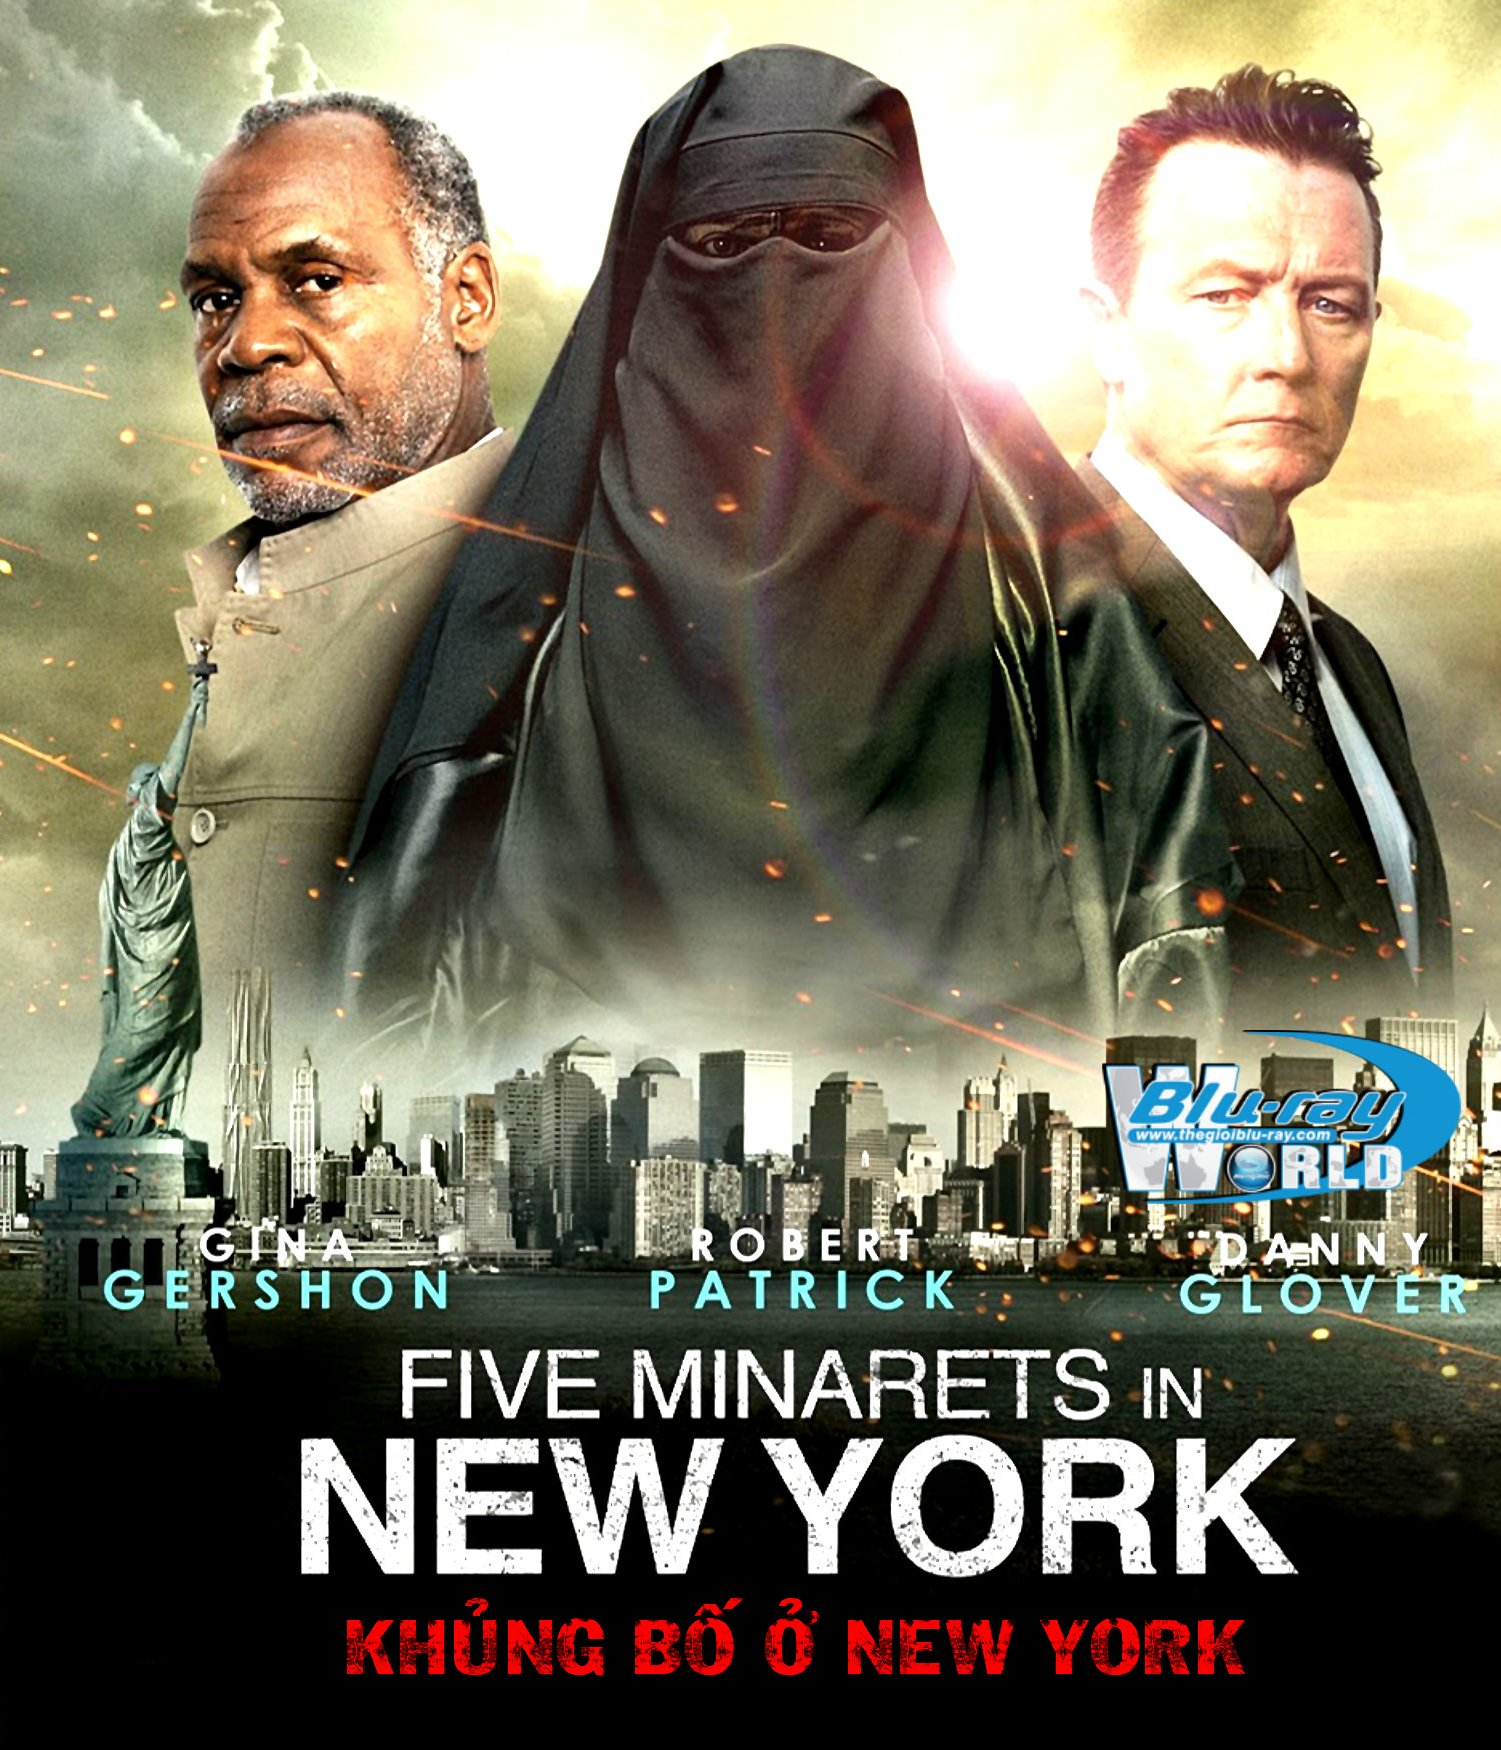 B1508. Five Minarets in New York - KHỦNG BỐ Ở NEW YORK 2D 25G (DTS-HD MA 5.1)